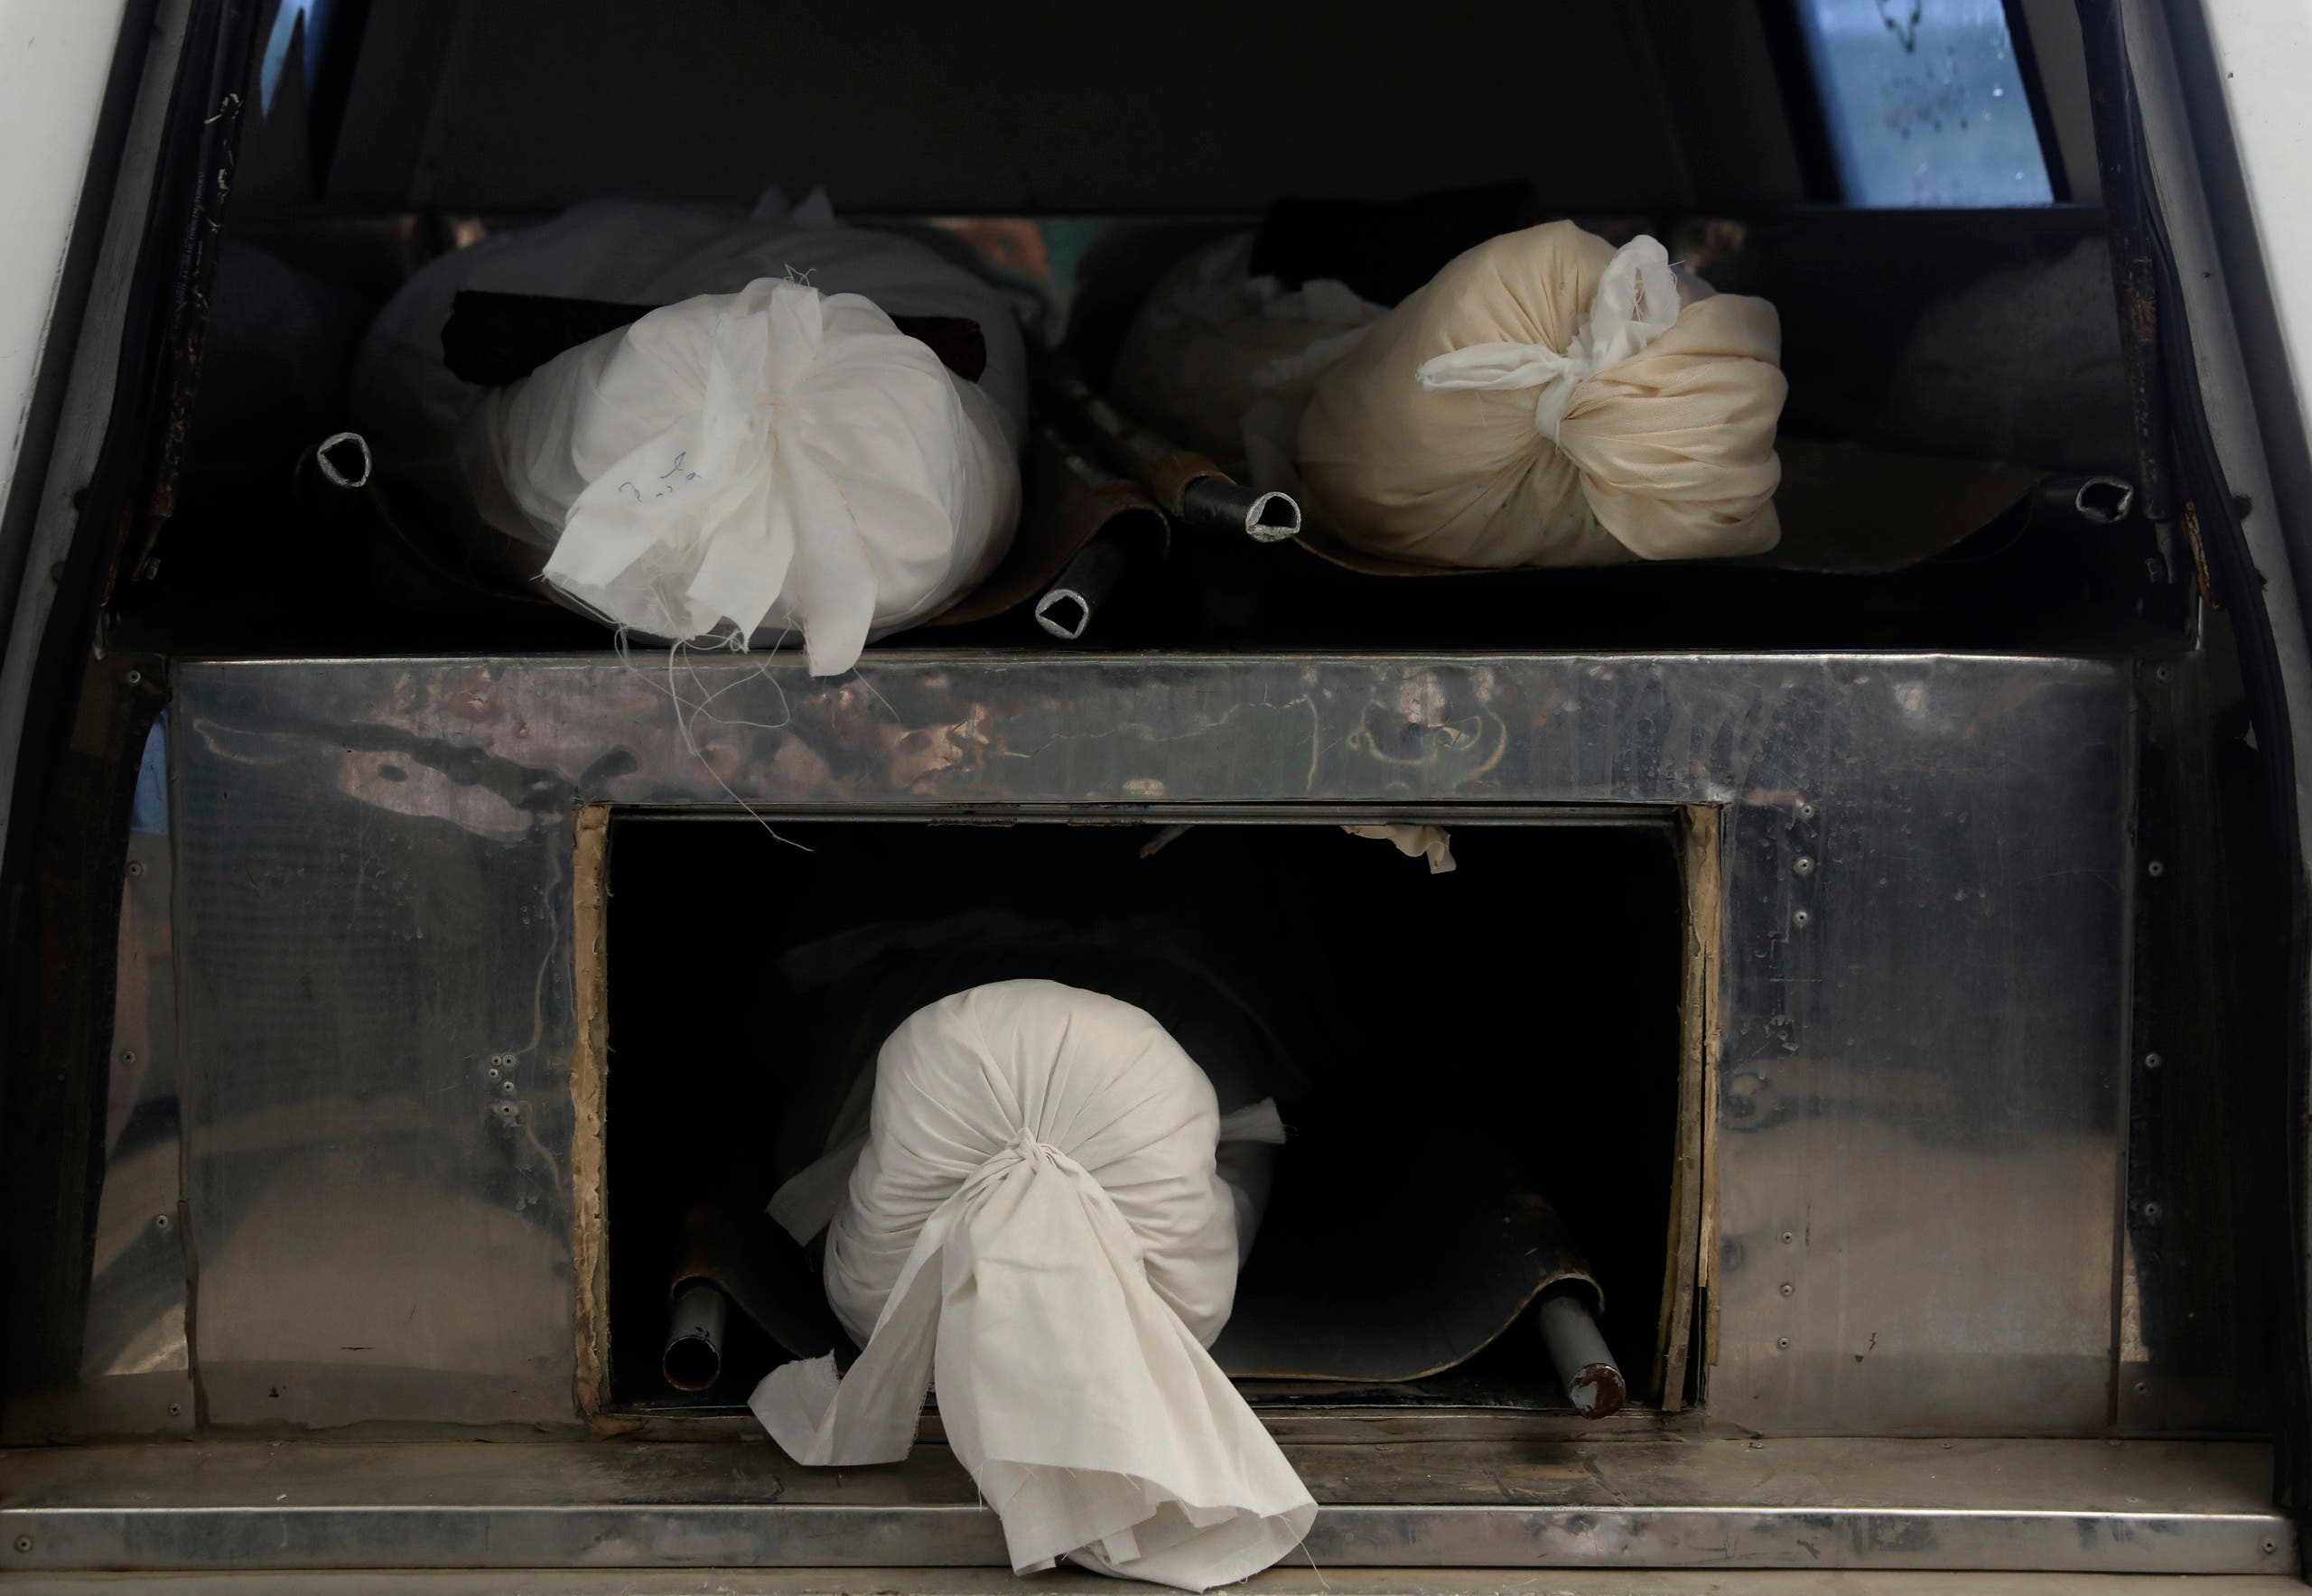 Bodies of a COVID-19 victims are shrouded and prepared to transfer for burial at Behesht-e-Masoumeh cemetery just outside the city of Qom, some 80 miles (125 kilometers) south of the capital Tehran, Iran, Wednesday, Sept. 15, 2021. (AP)